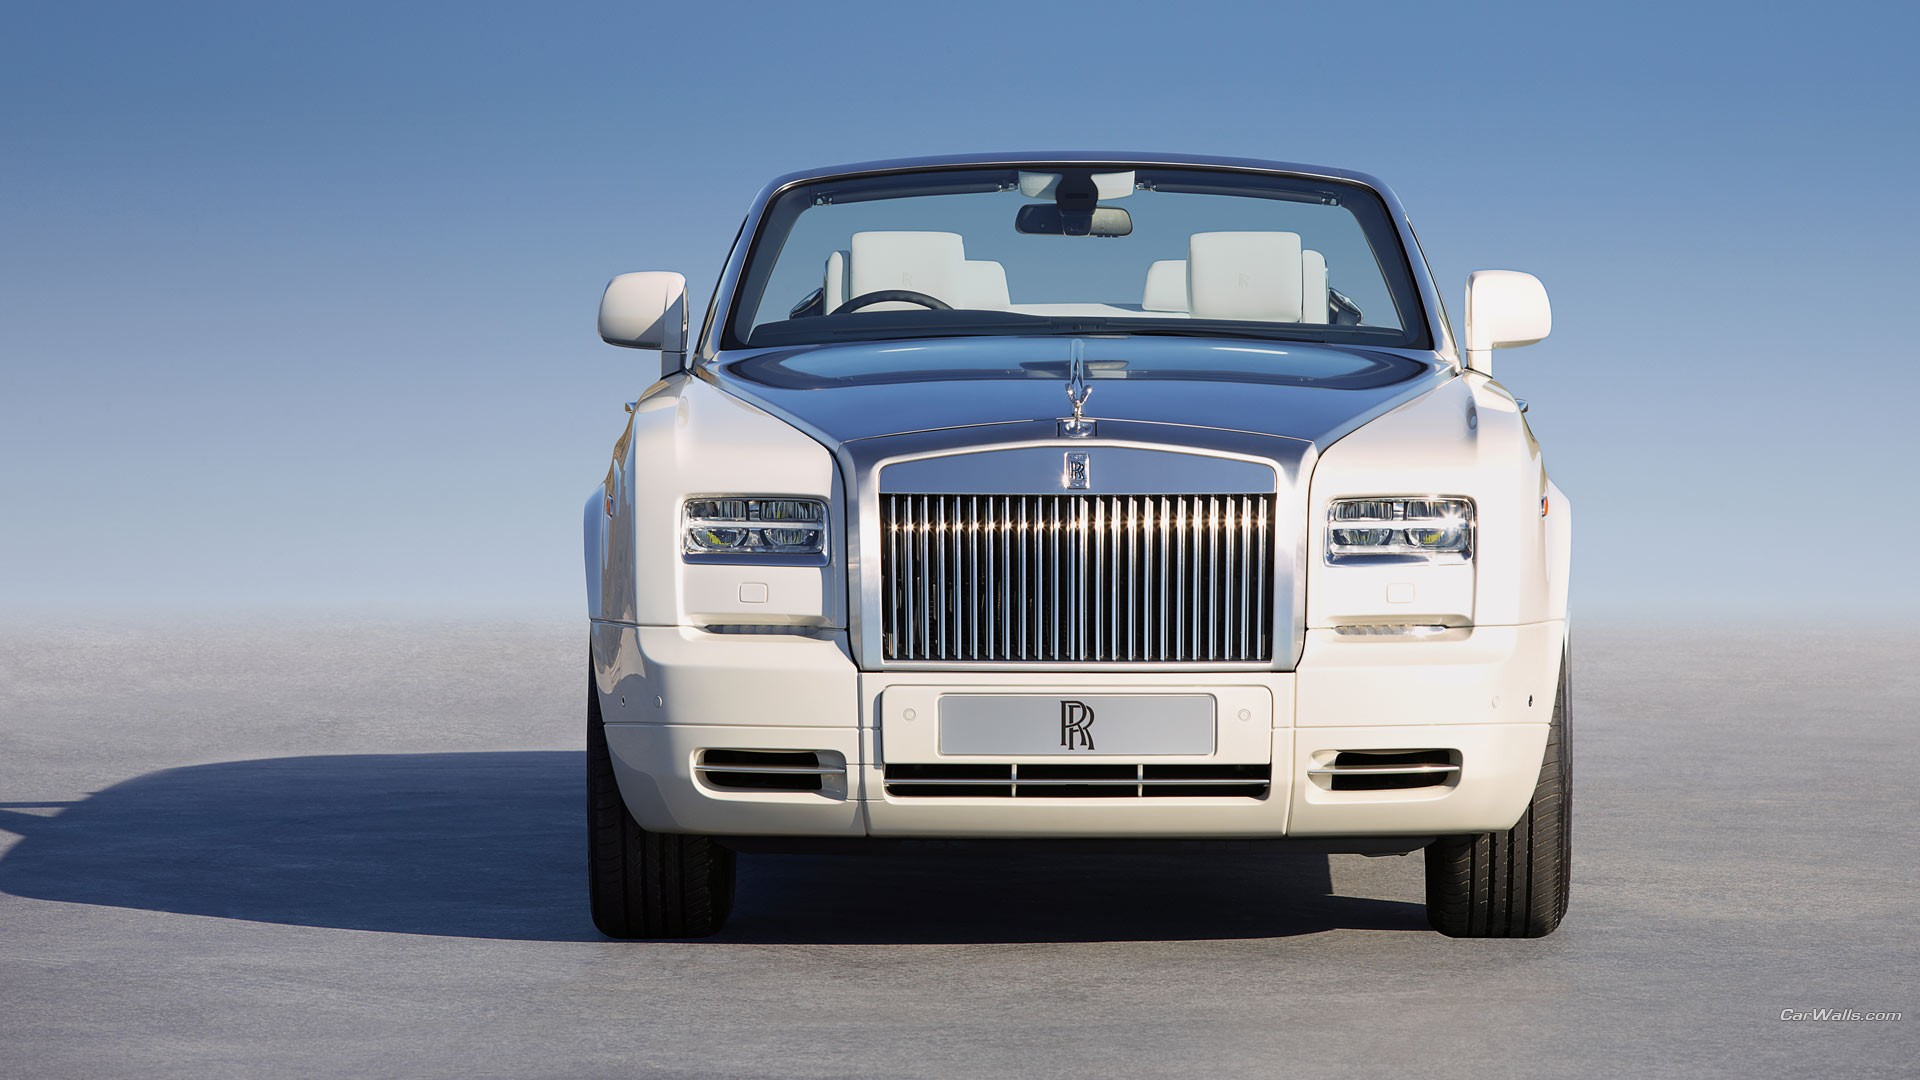 Rolls Royce Phantom - 1920x1080